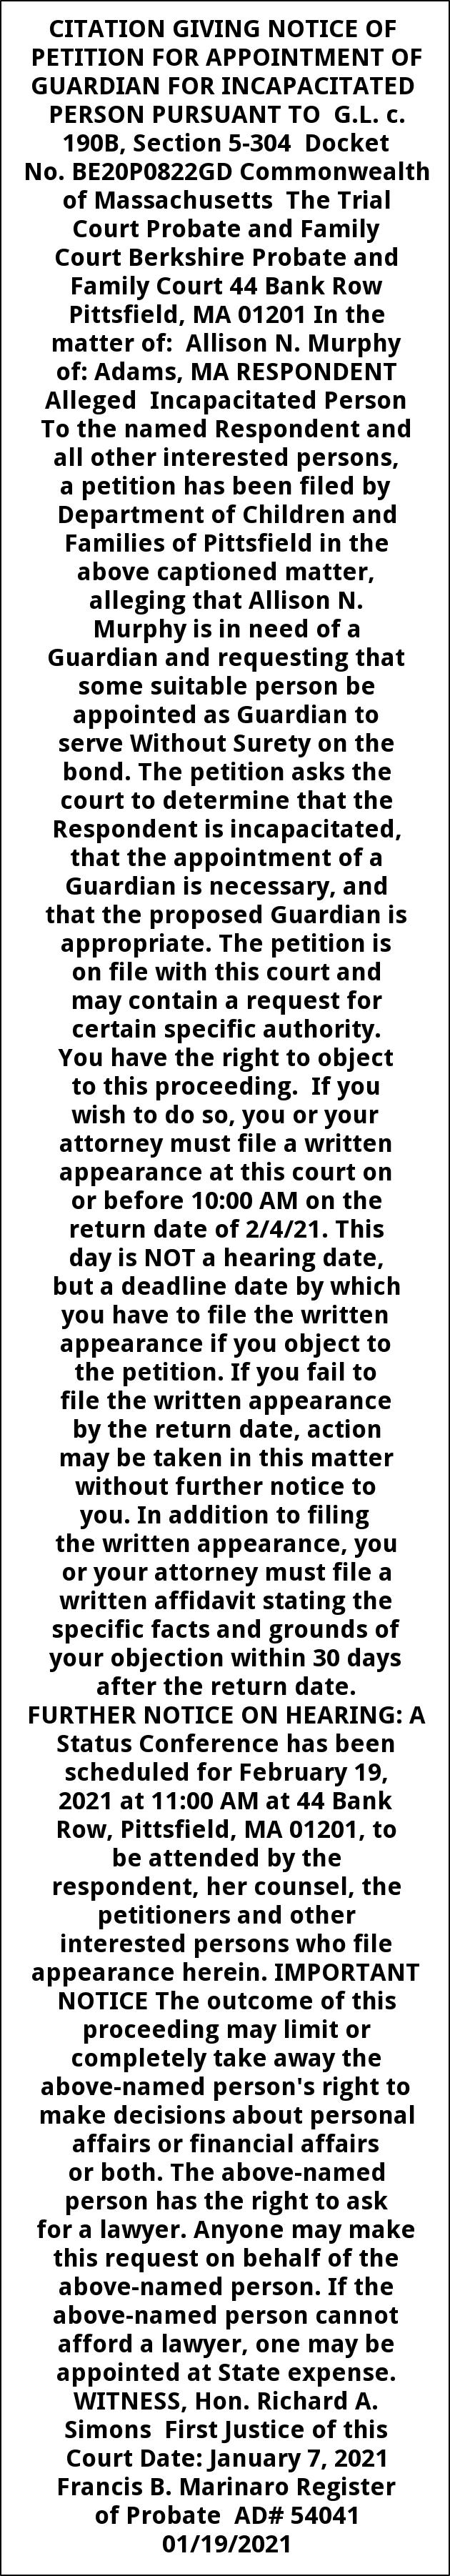 Informal Probate Publication Notice